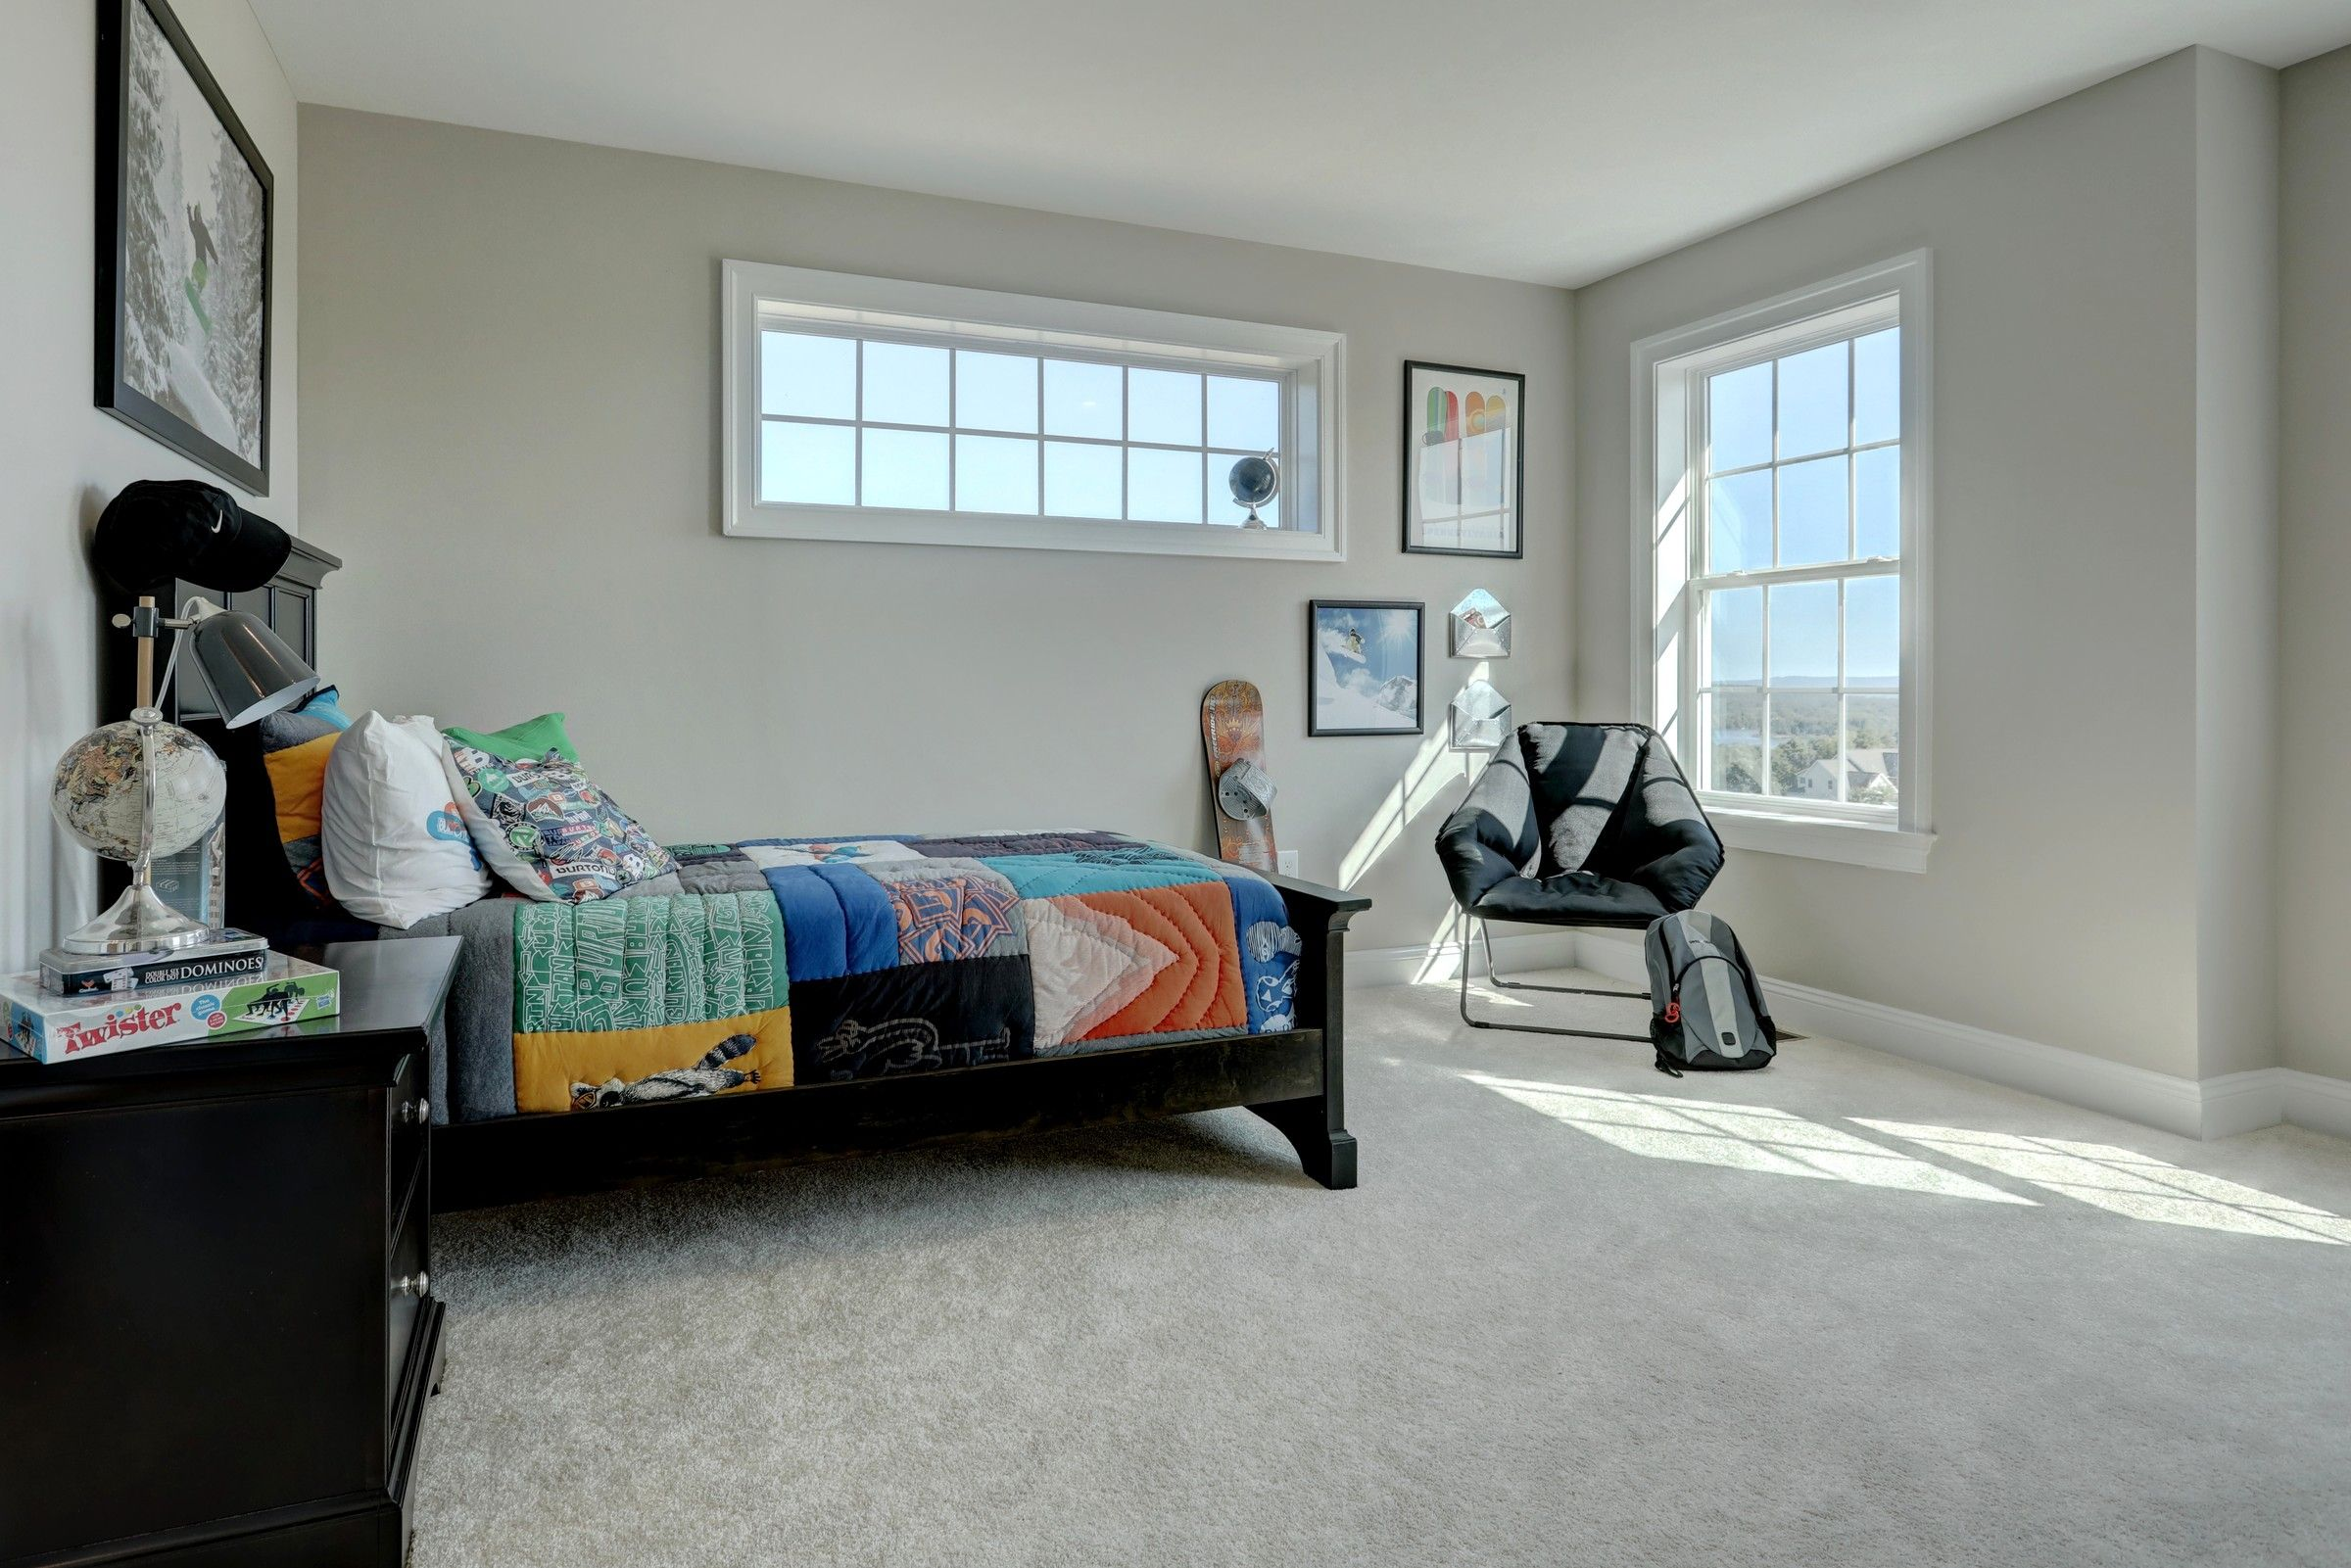 Bedroom featured in the Oxford Farmhouse By Keystone Custom Homes in York, PA